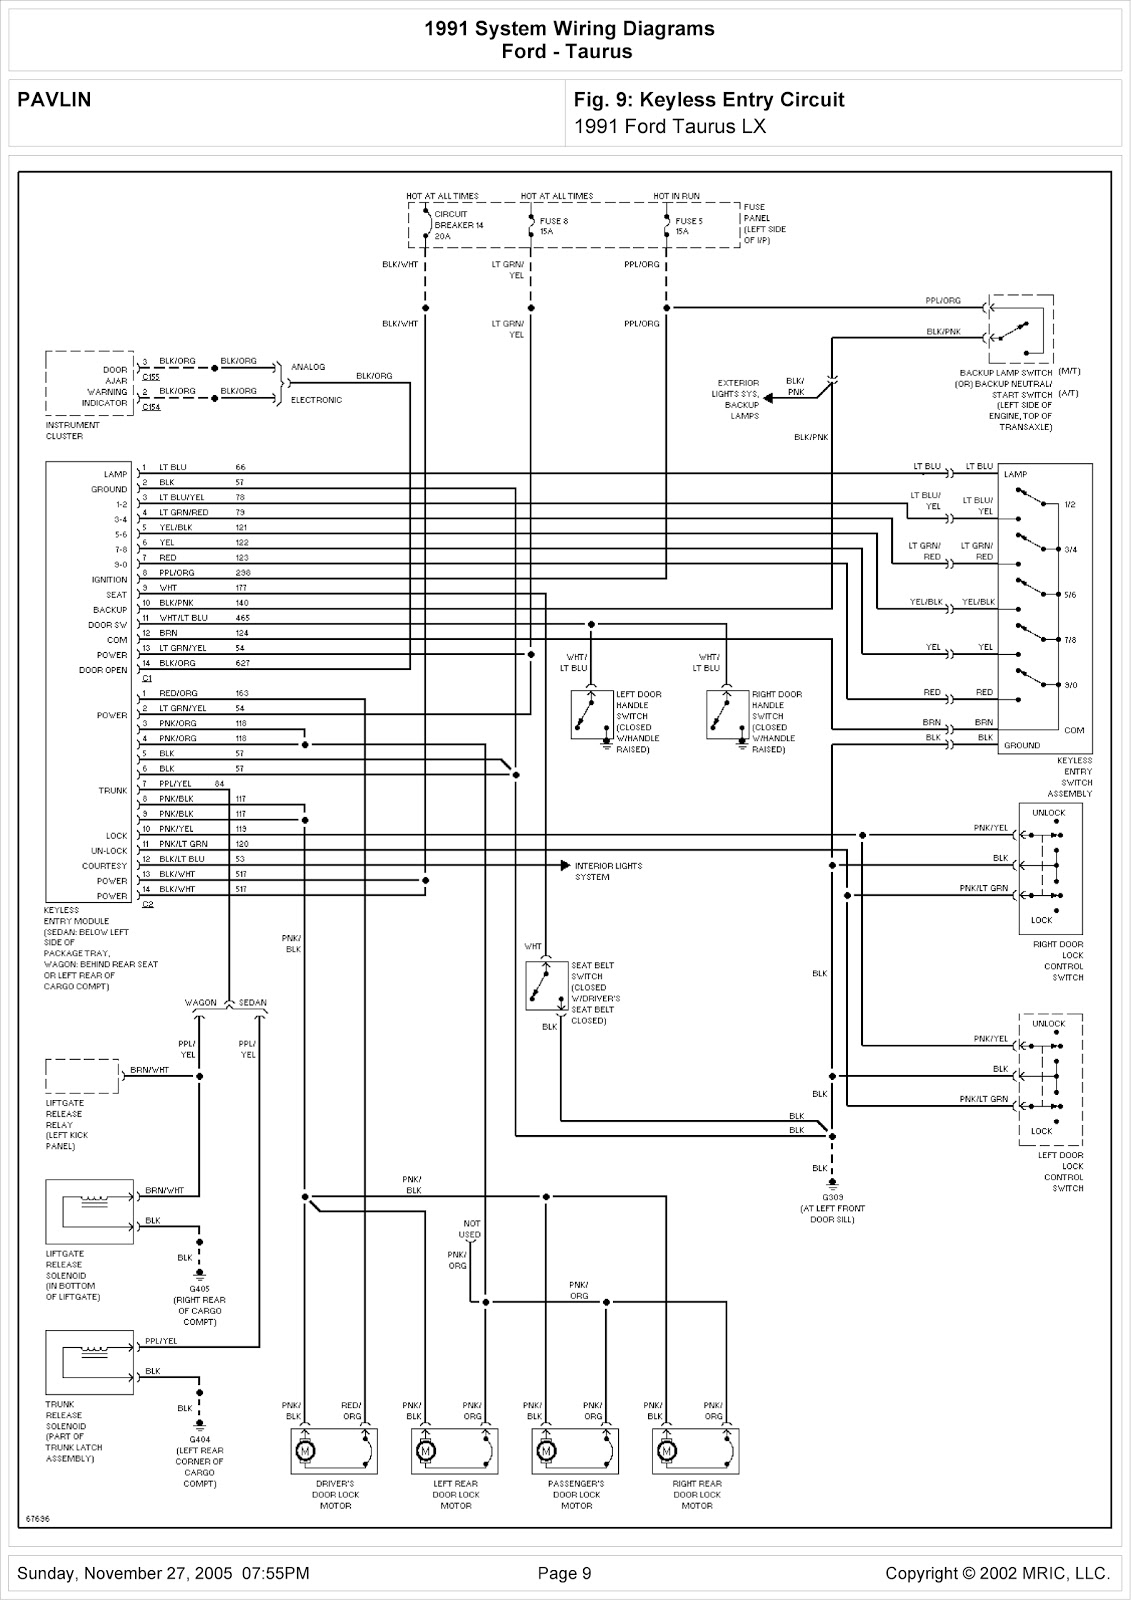 Ford Taurus Lx System Wiring Diagram For Keyless